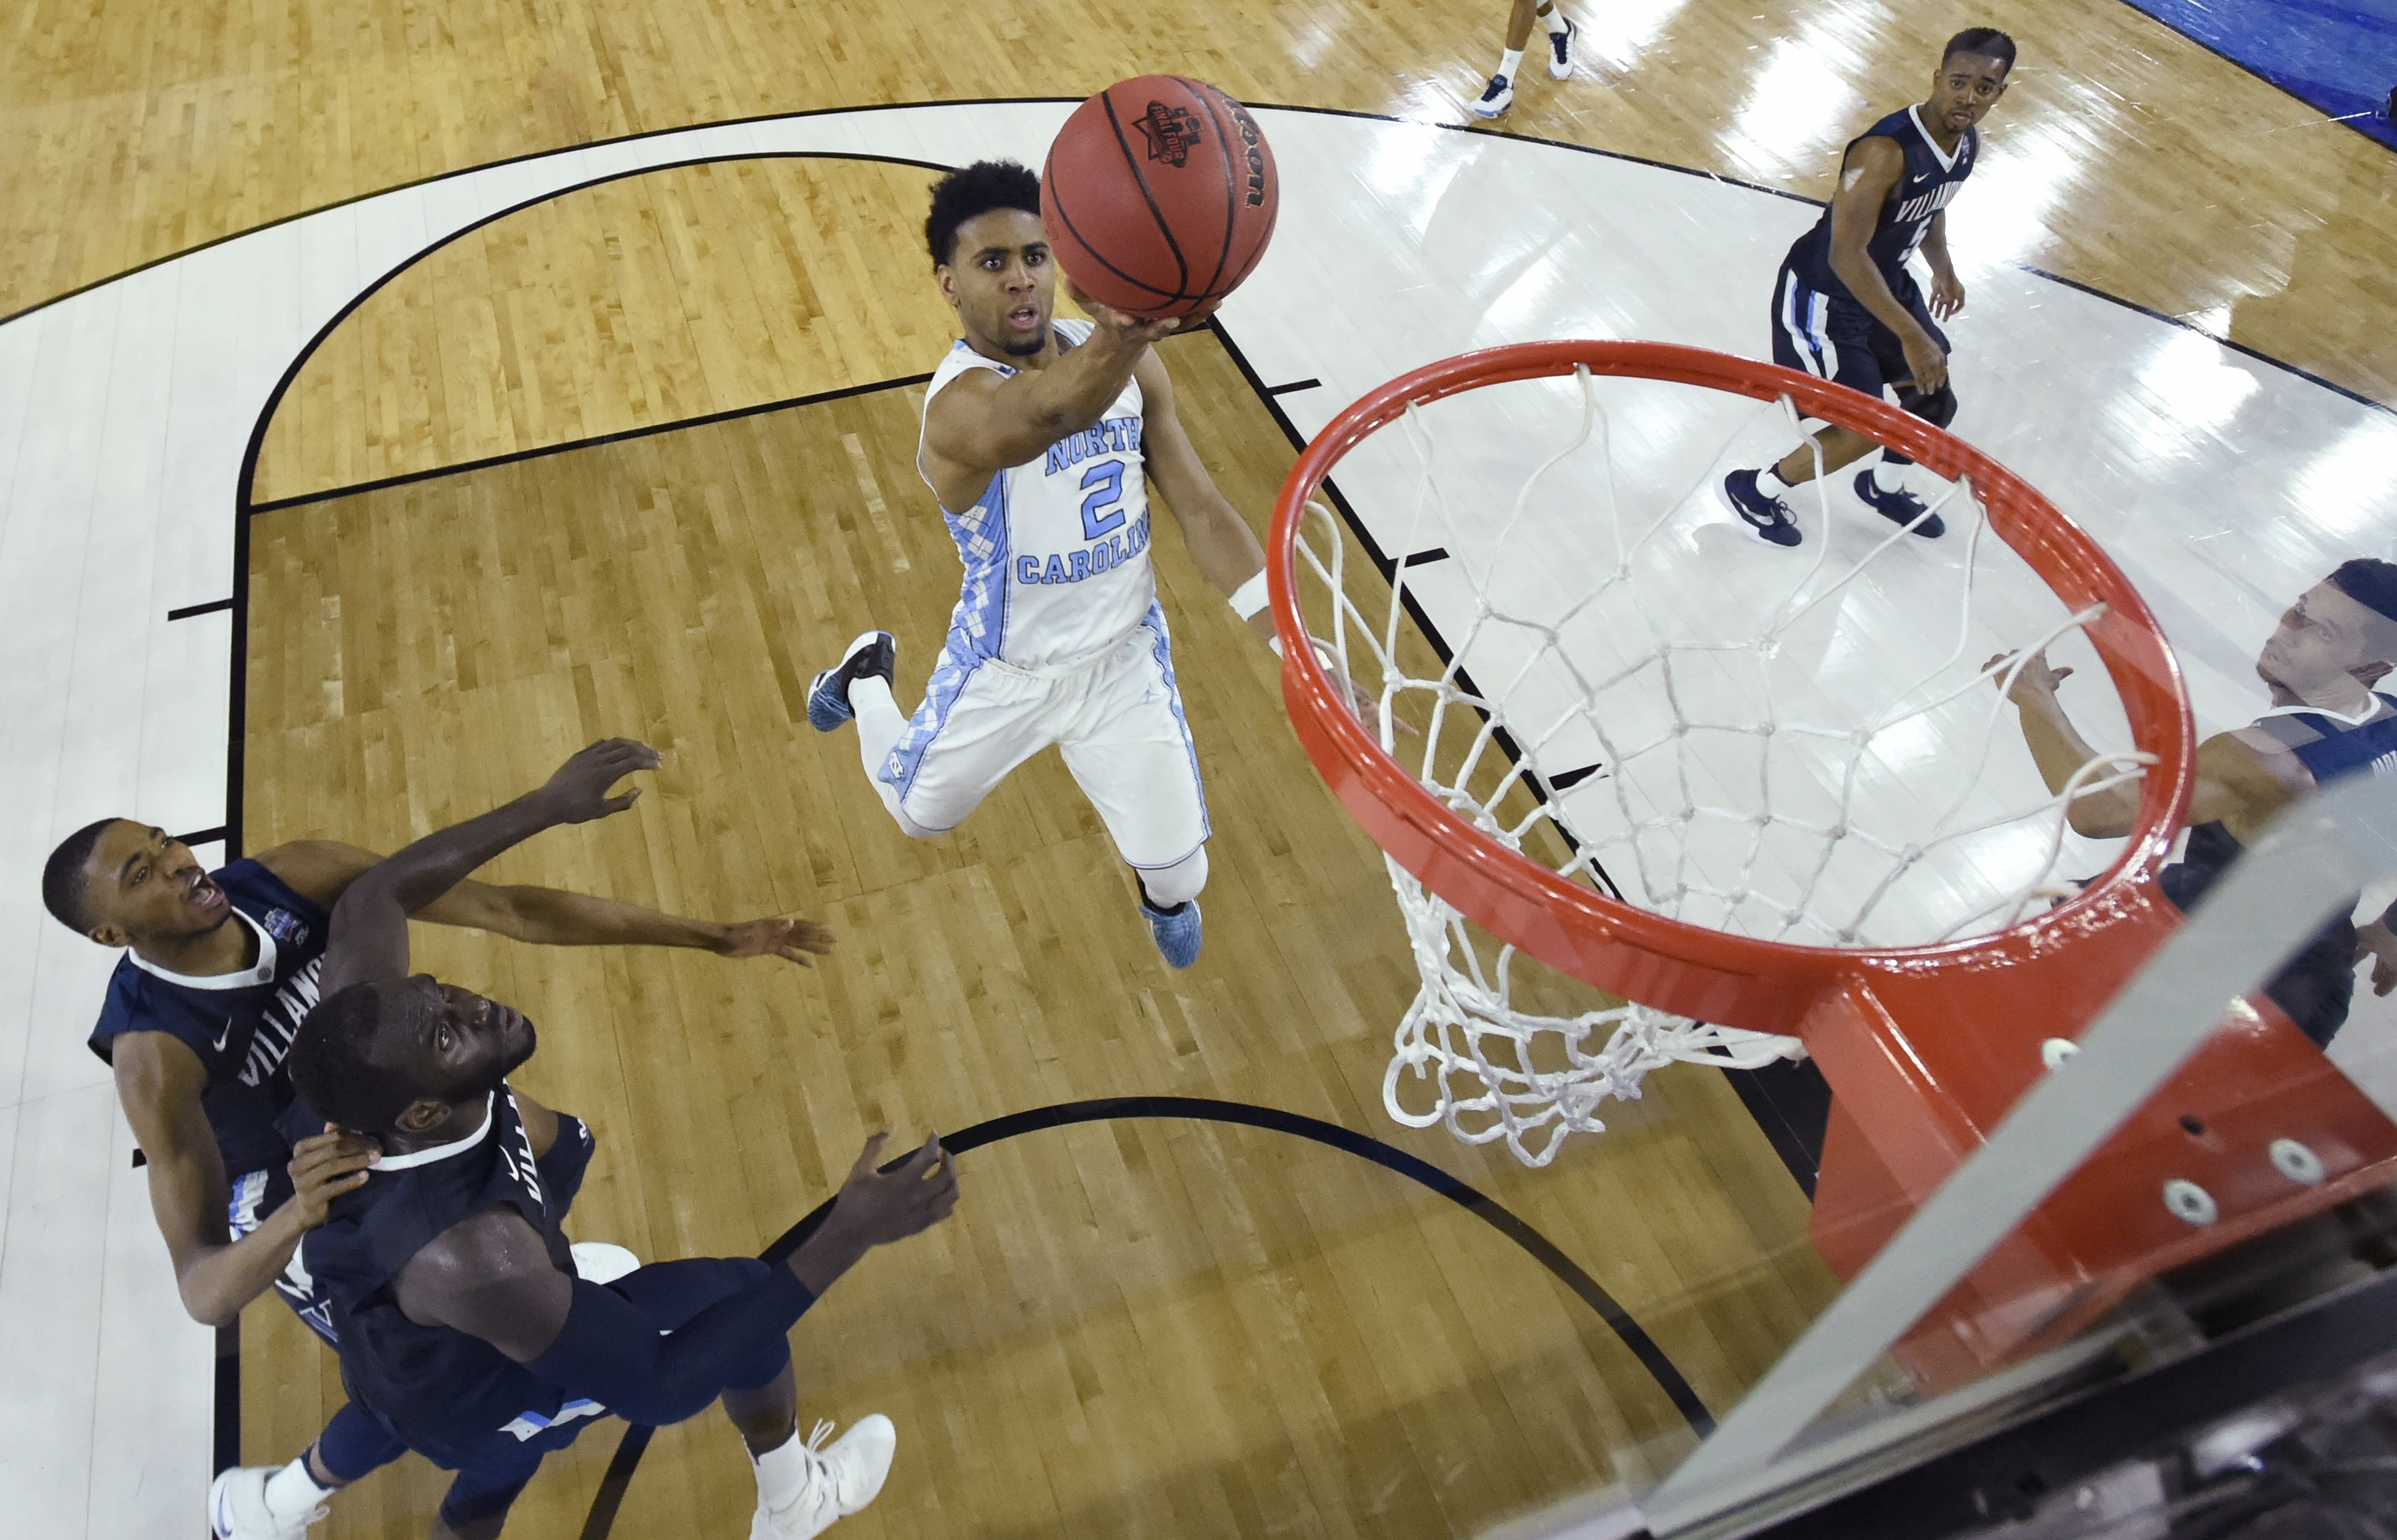 North Carolina guard Joel Berry II (2) heads to the hoop against Villanova during the first half of the NCAA Final Four tournament college basketball championship game Monday, April 4, 2016, in Houston. (Chris Steppig/NCAA Photos Pool)